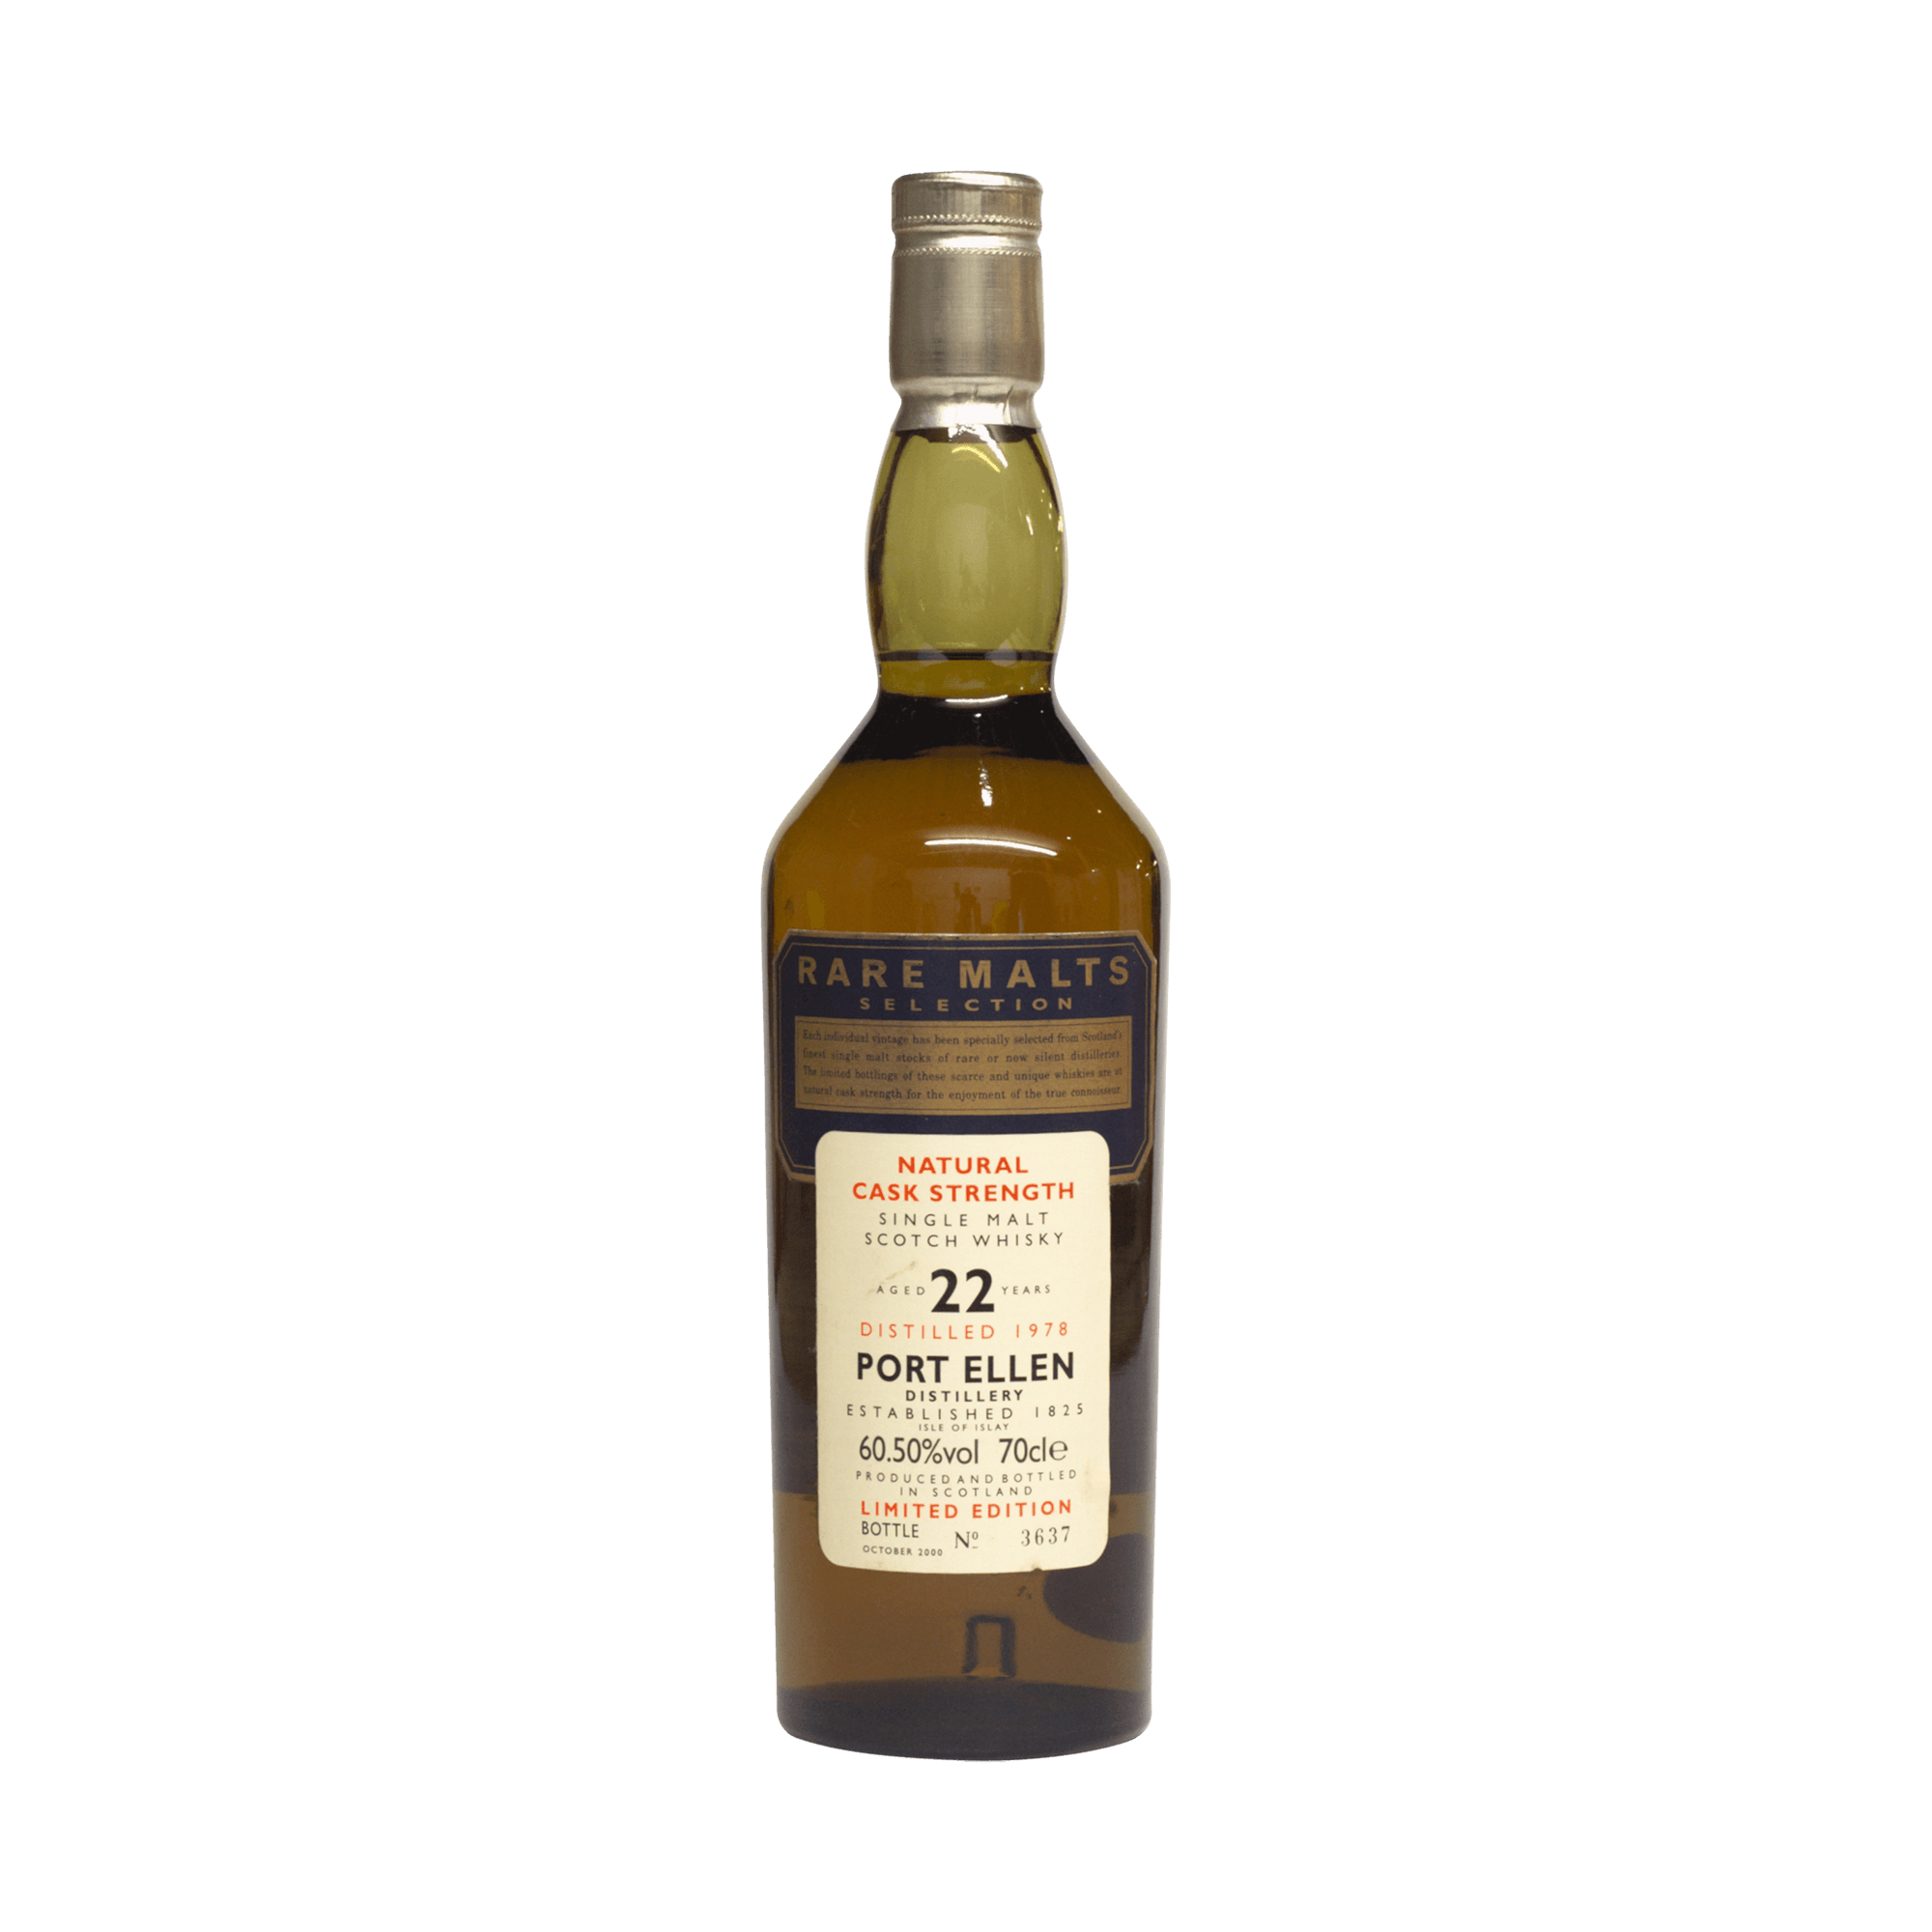 Port Ellen 1978 22 Year Old Rare Malts Selection 60.50%